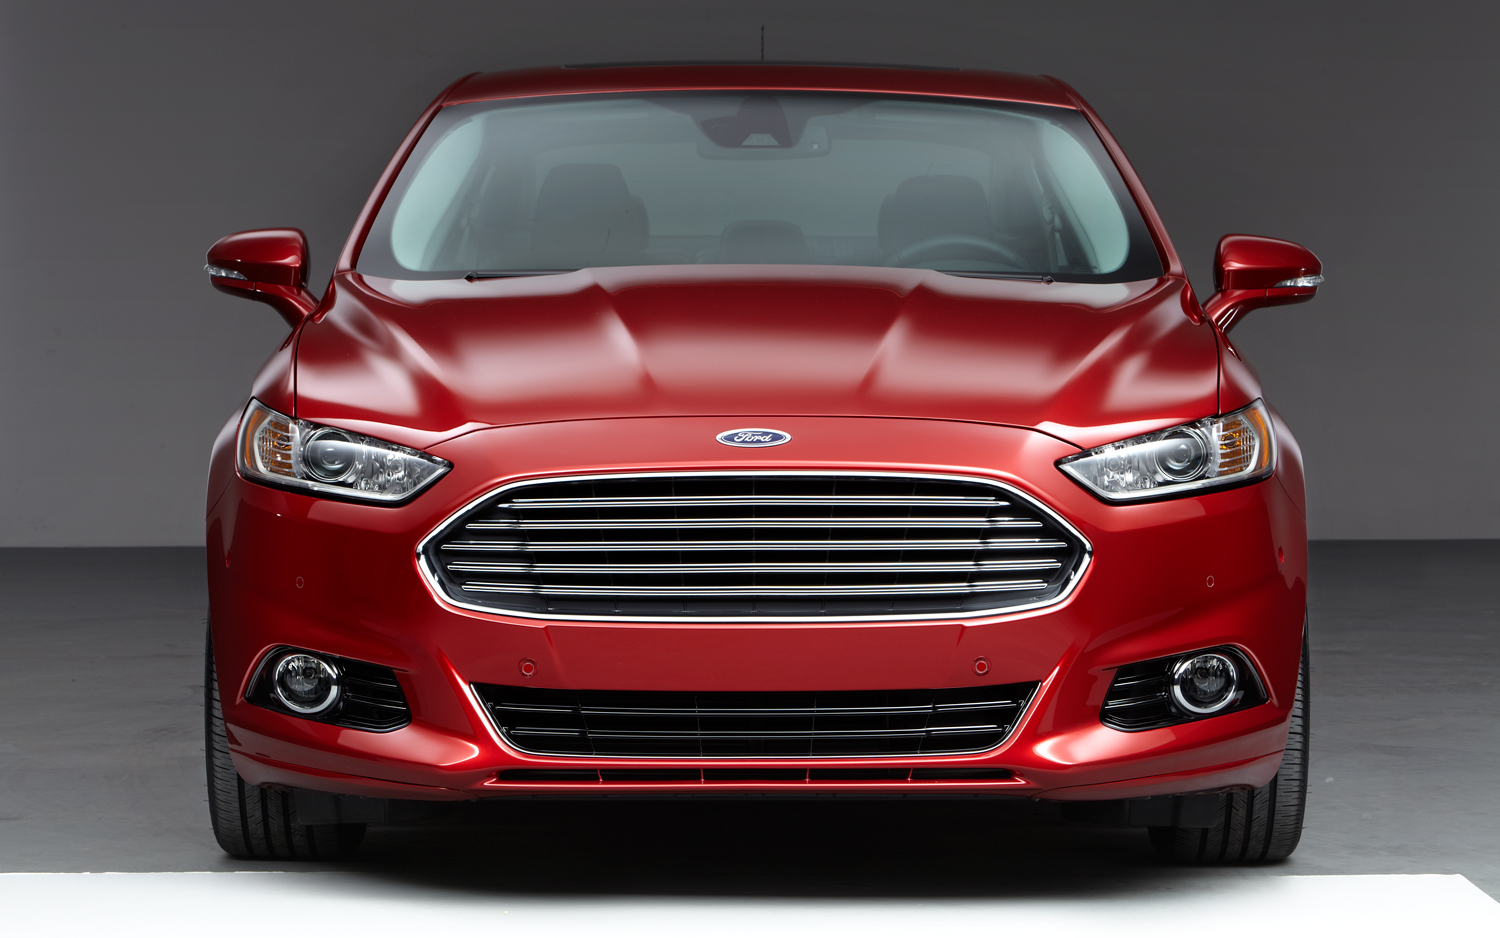 Ford Fusion-Brooklyn Ford Replacement Key.jpg